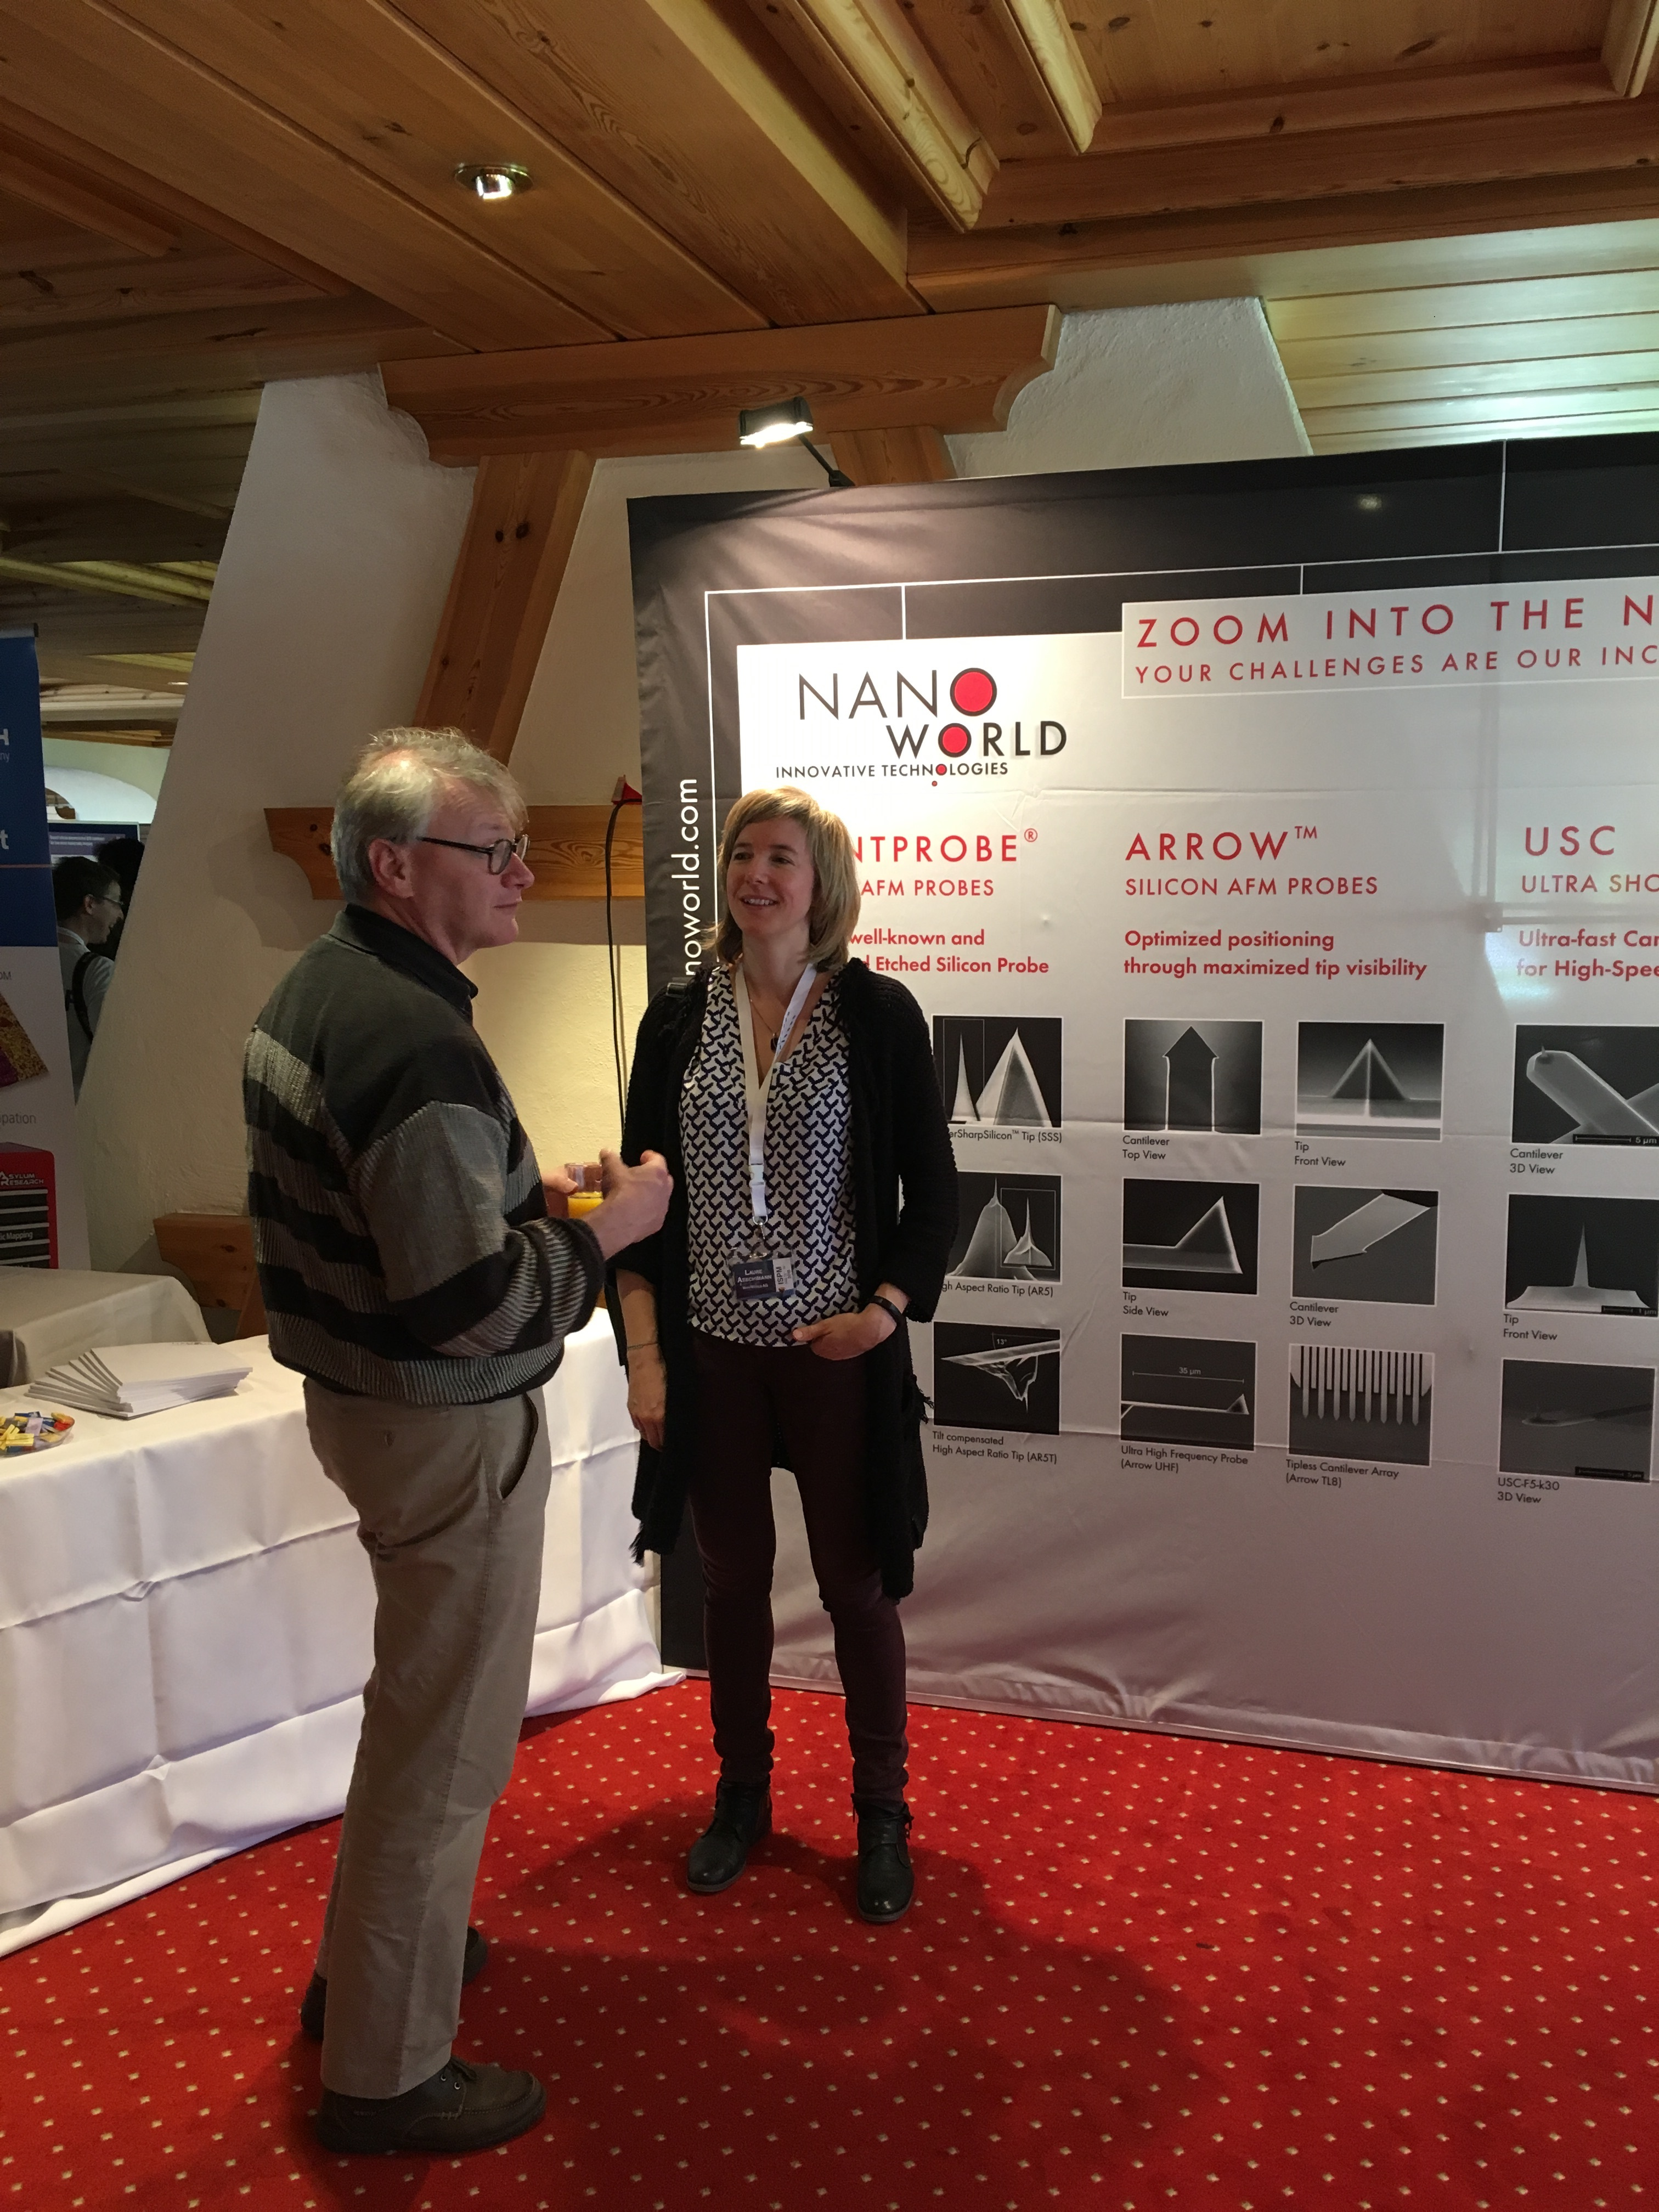 NanoWorld AFM probes booth at ISPM 2016, Grindelwald, Switzerland